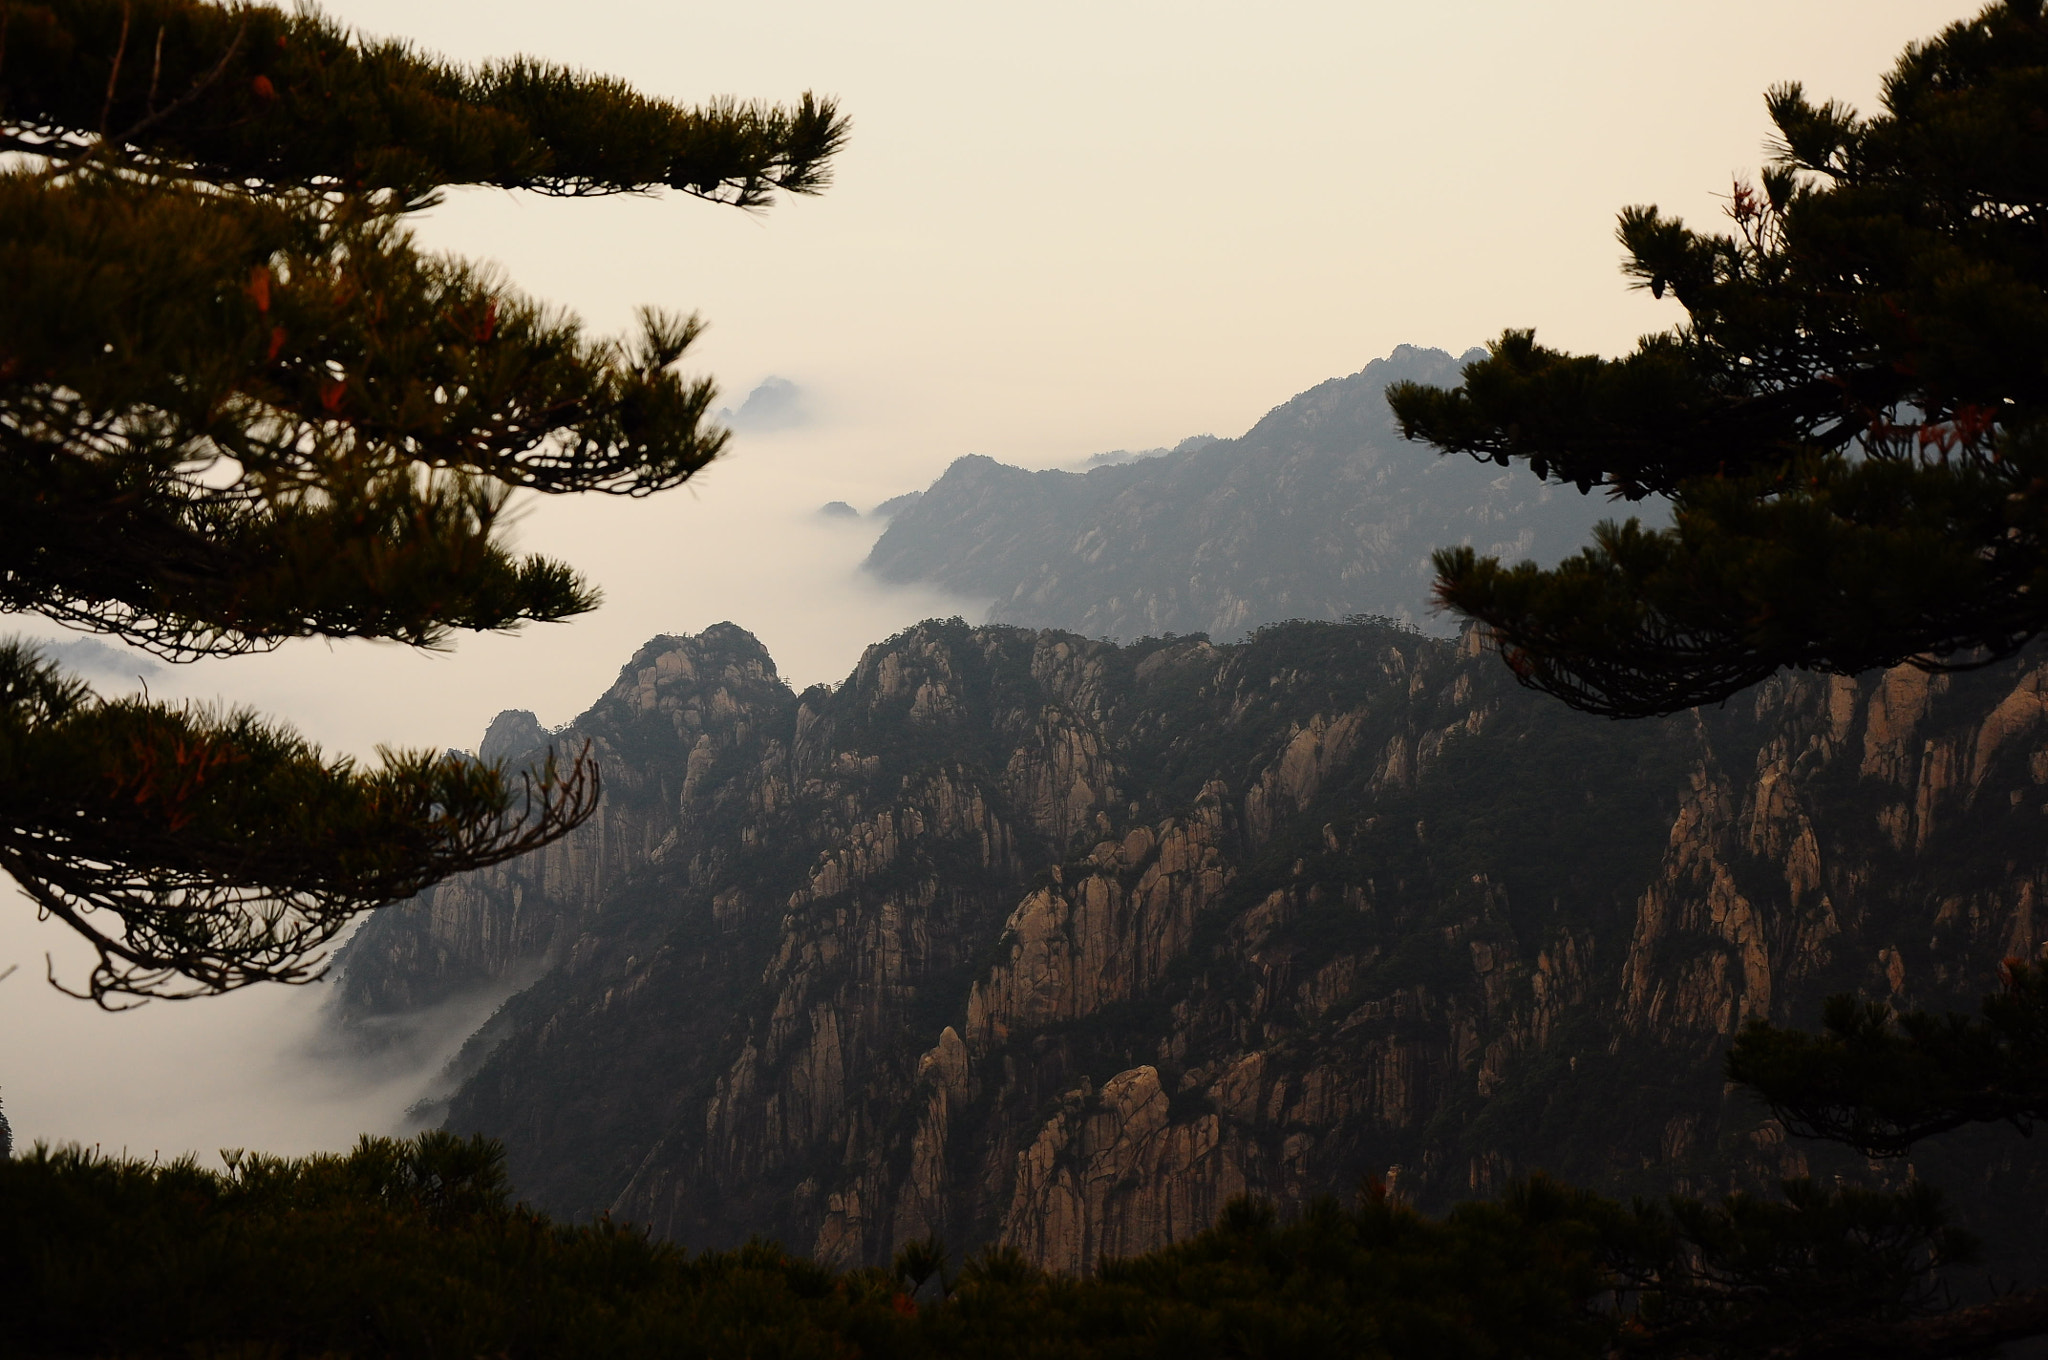 Photograph Mount Huangshan by Hao Wang on 500px